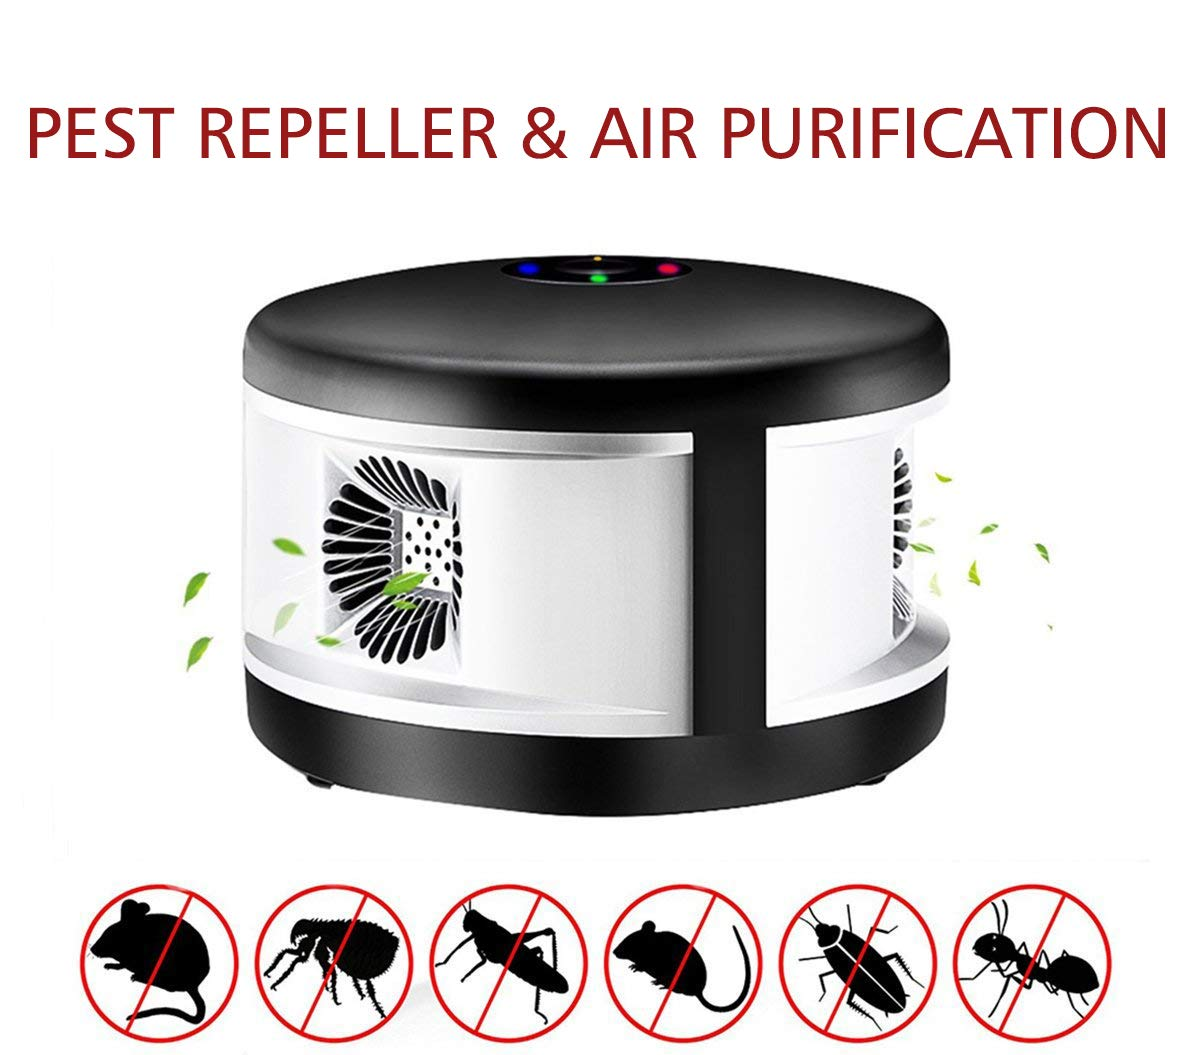 Pest Mouse Repeller, Ultrasonic Pest Control Repellent with 5 Waves Anion Air Purification for Family,Restaurant,Office-Black